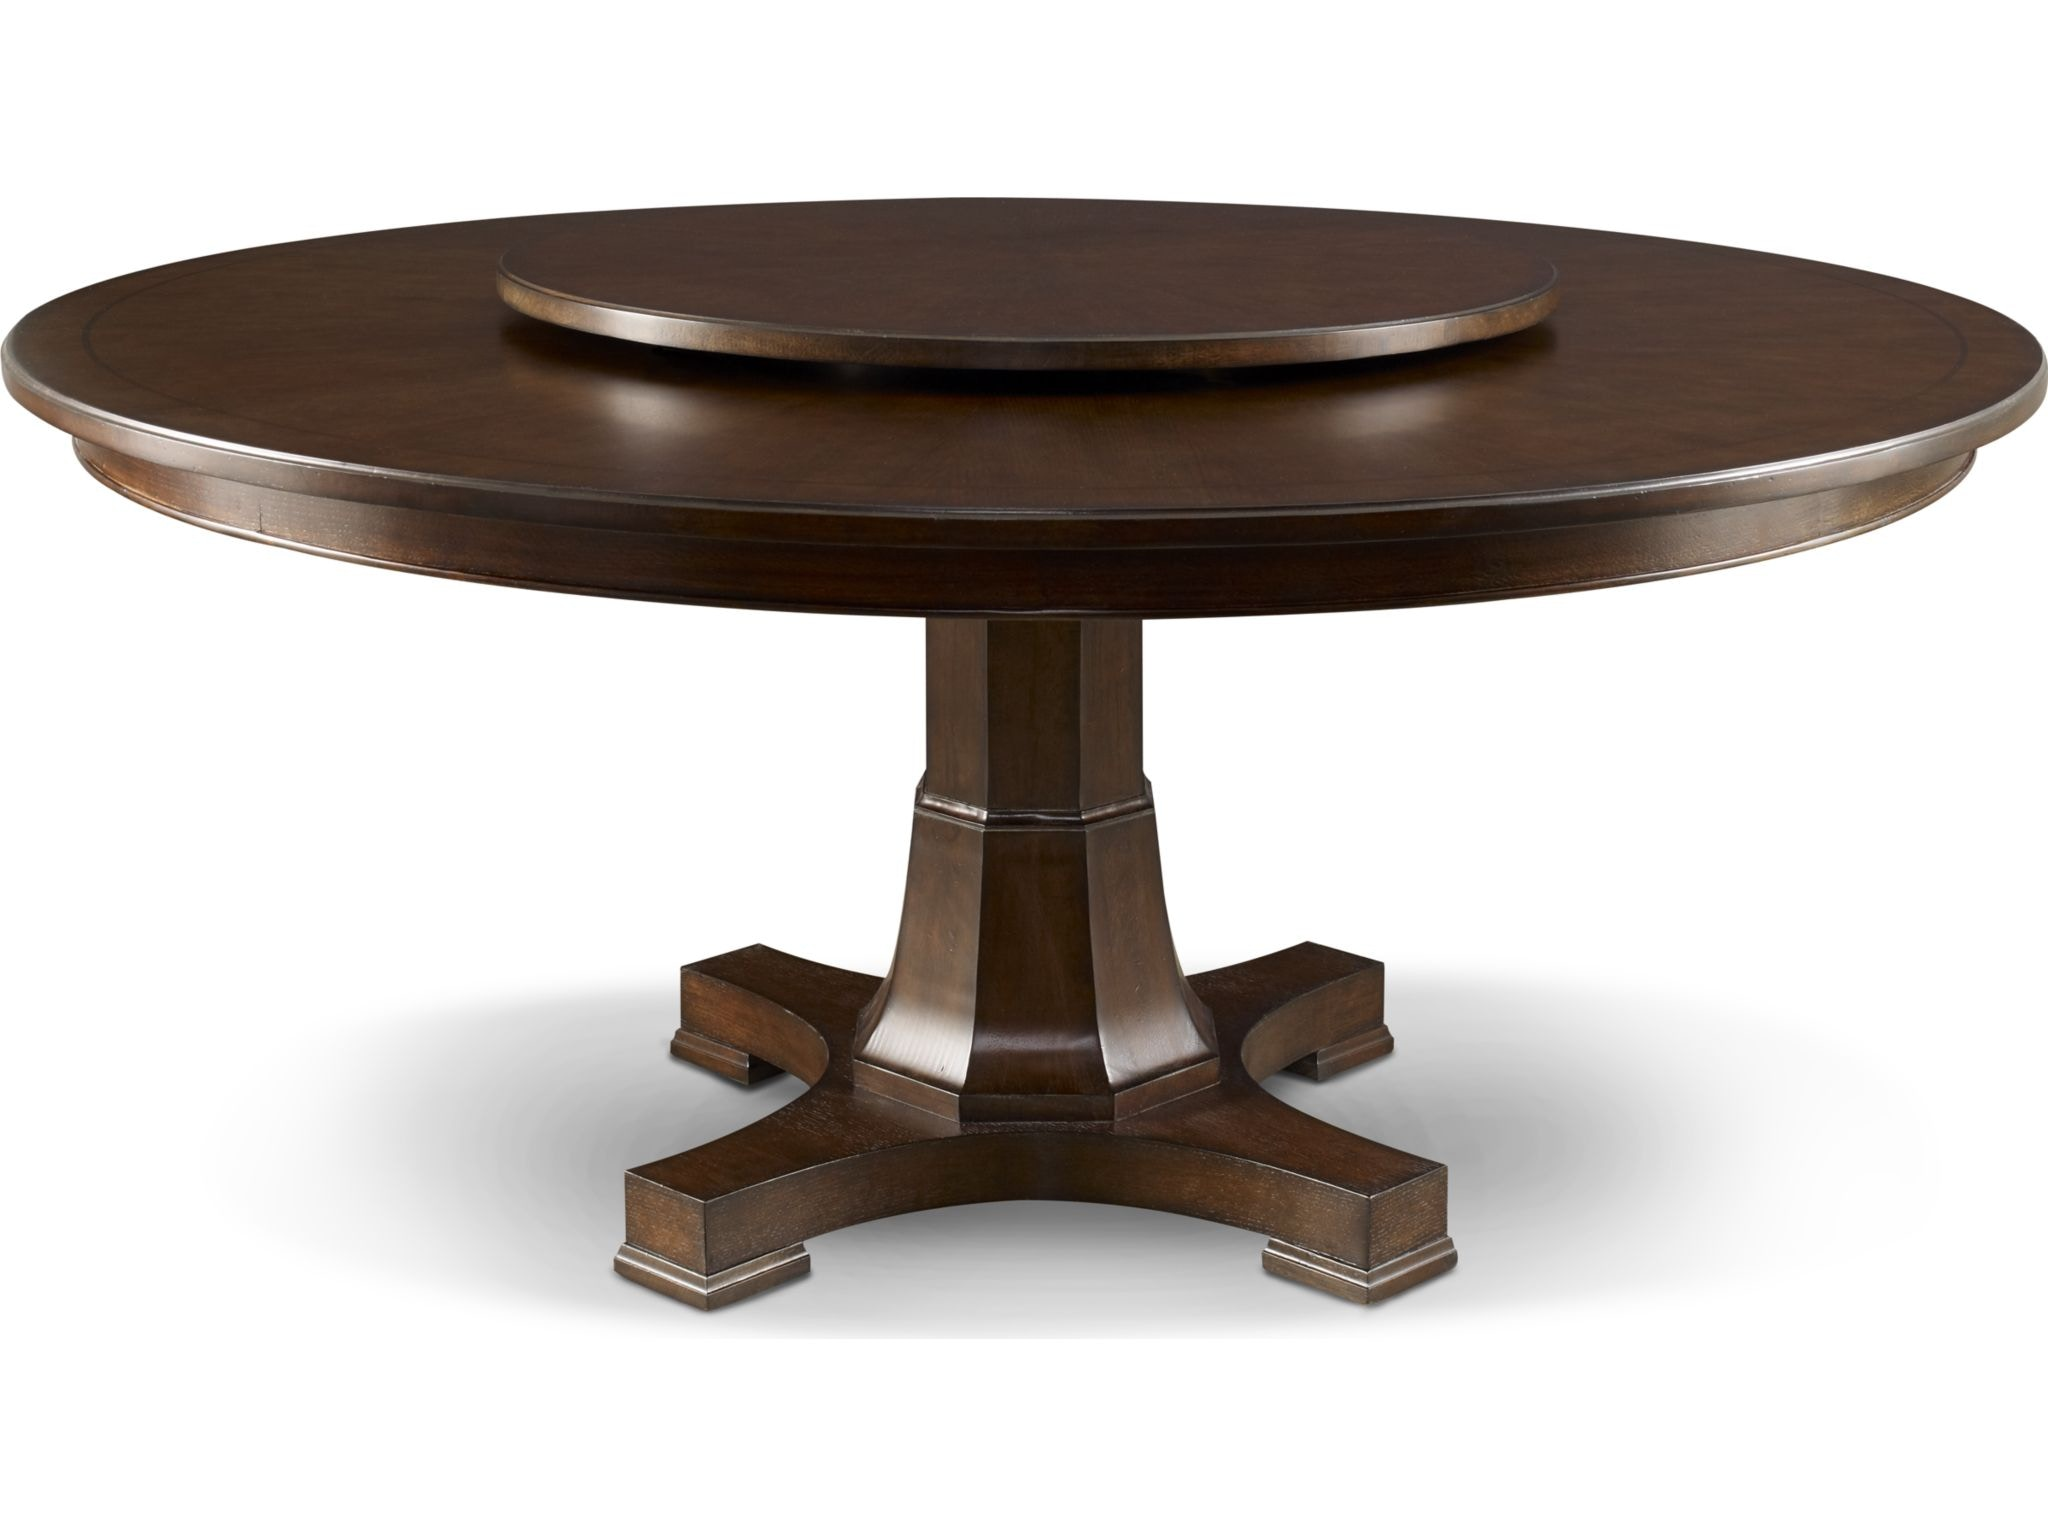 Thomasville Dining Room Adelaide Round Dining Table 83421730